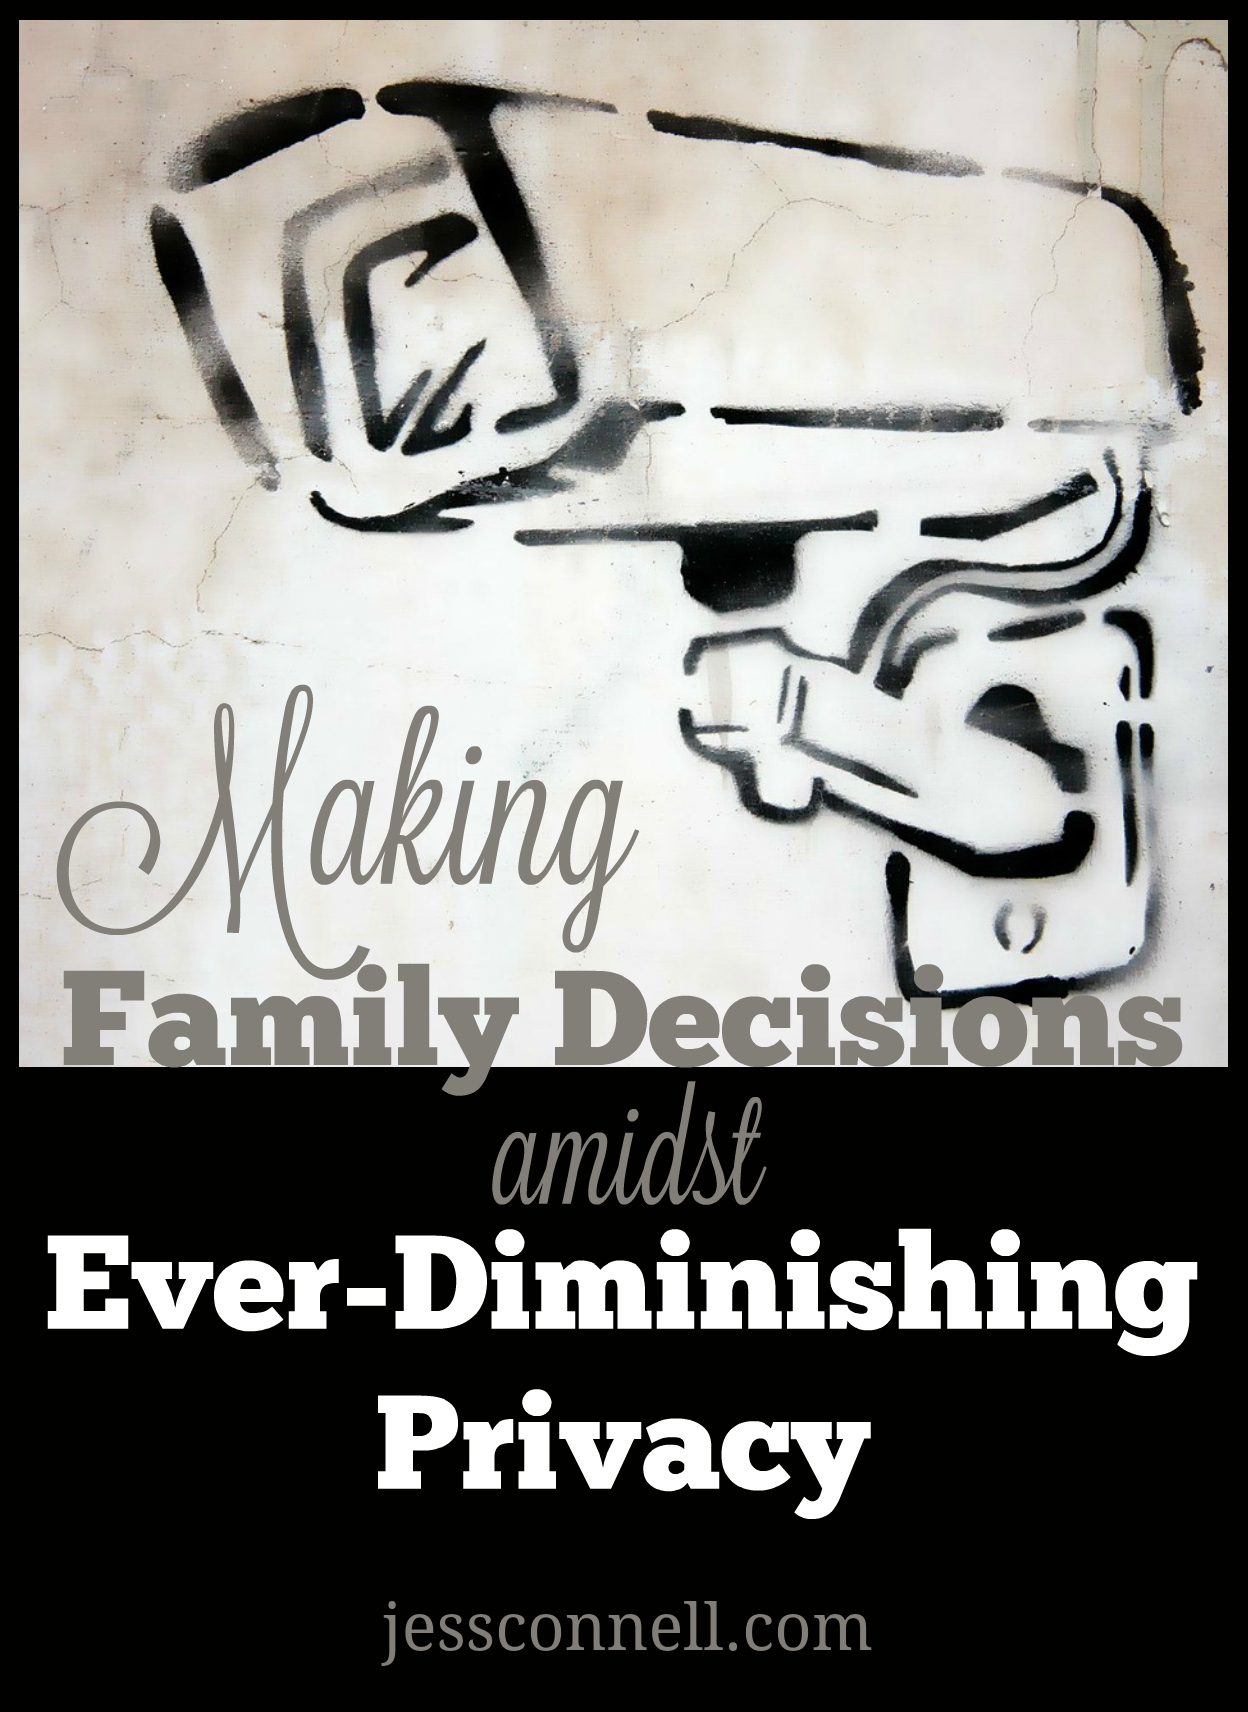 Making Family Decisions amidst Ever-Diminishing Privacy // jessconnell.com